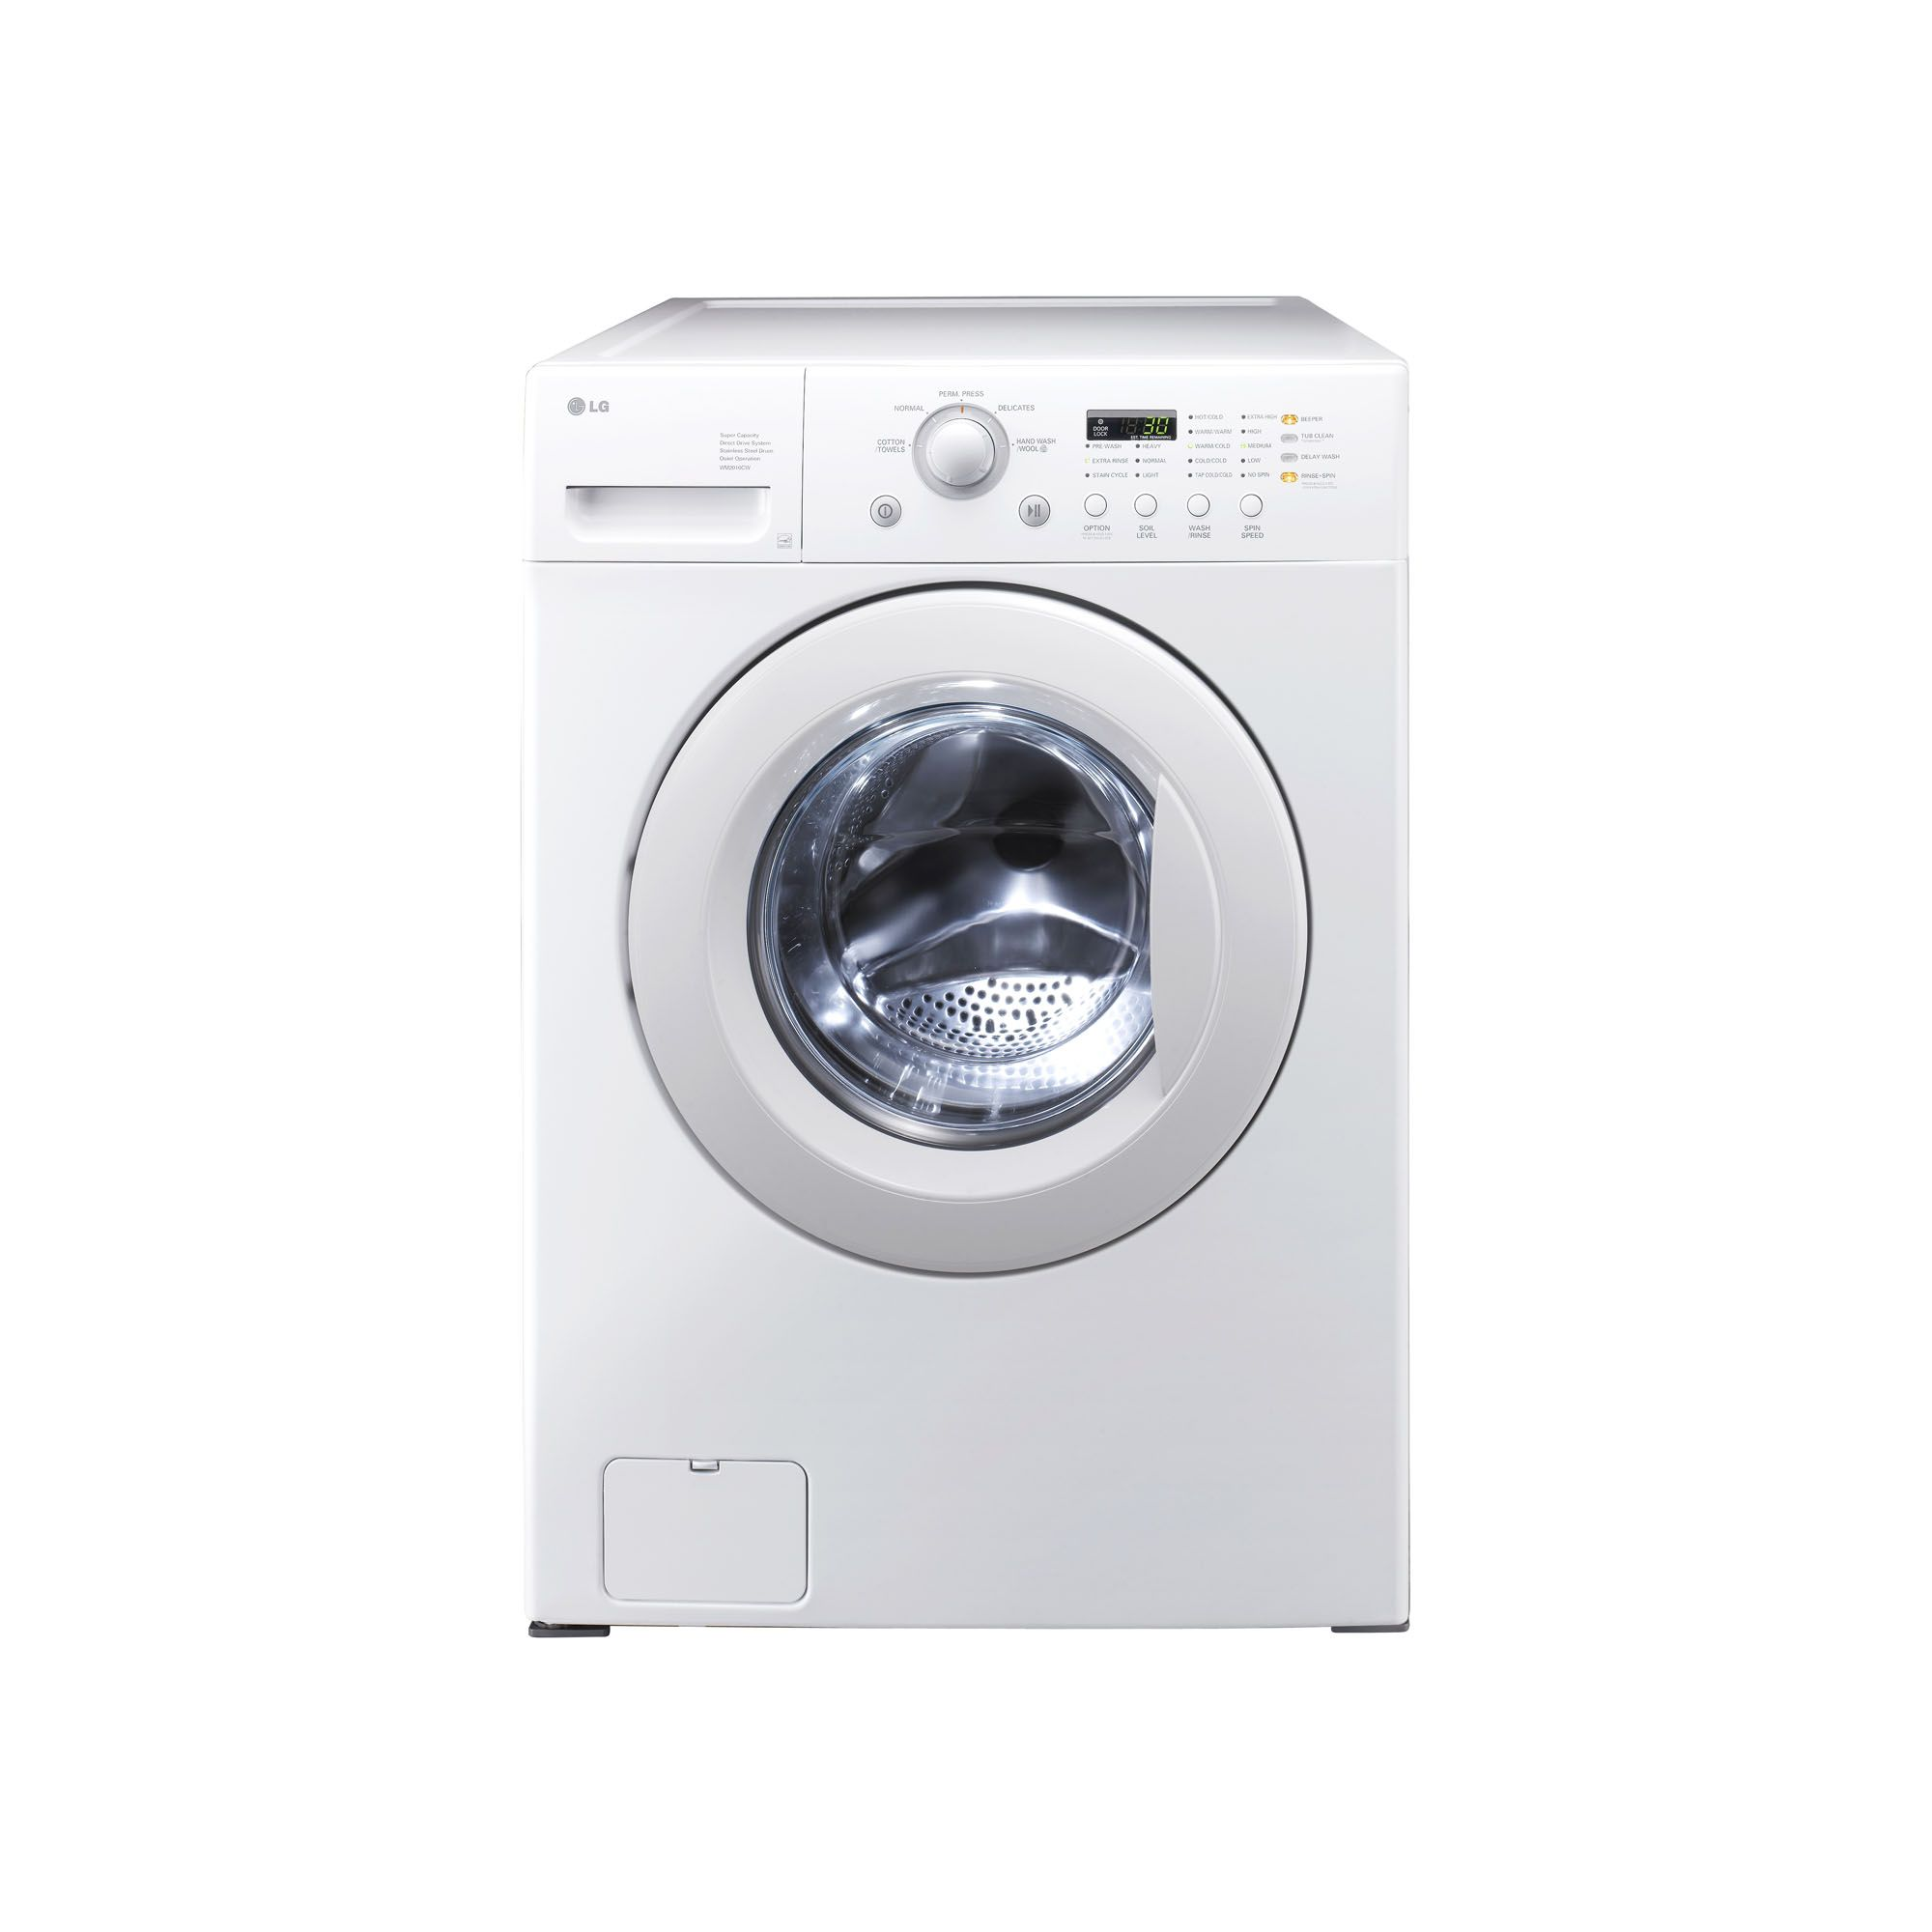 hight resolution of looking for lg model wm2010cw front load washer repair replacement lg wm2010cw wiring diagram